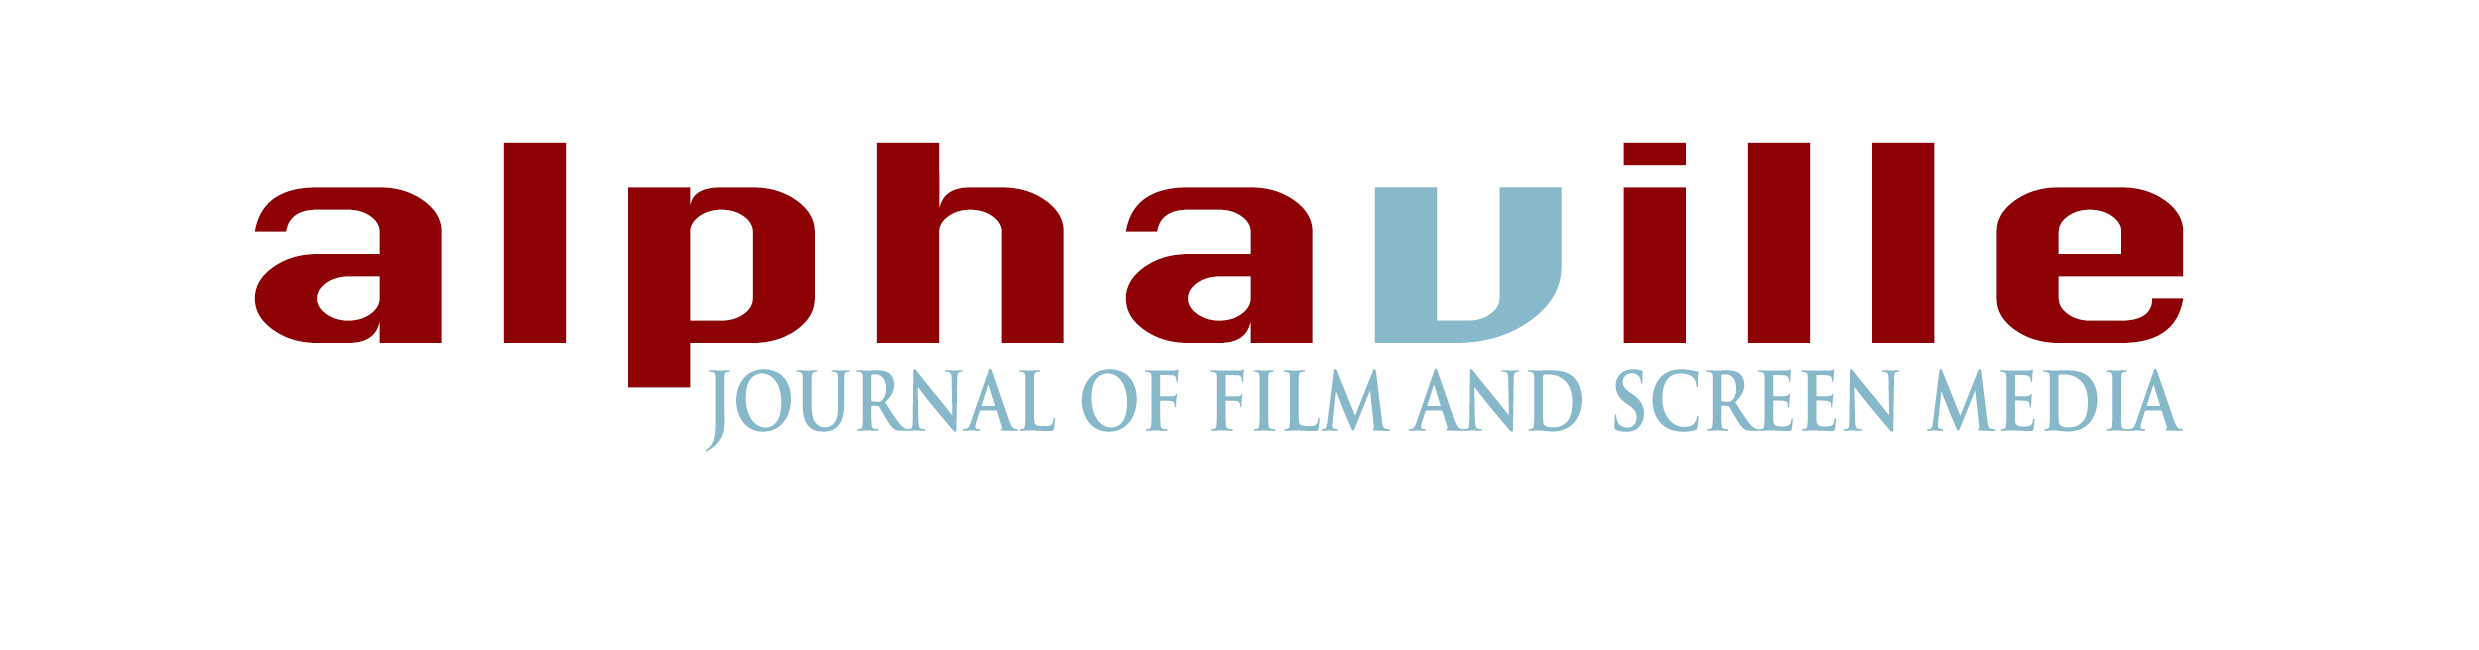 Alphaville Journal of Film & Screen Media - A Call For Papers